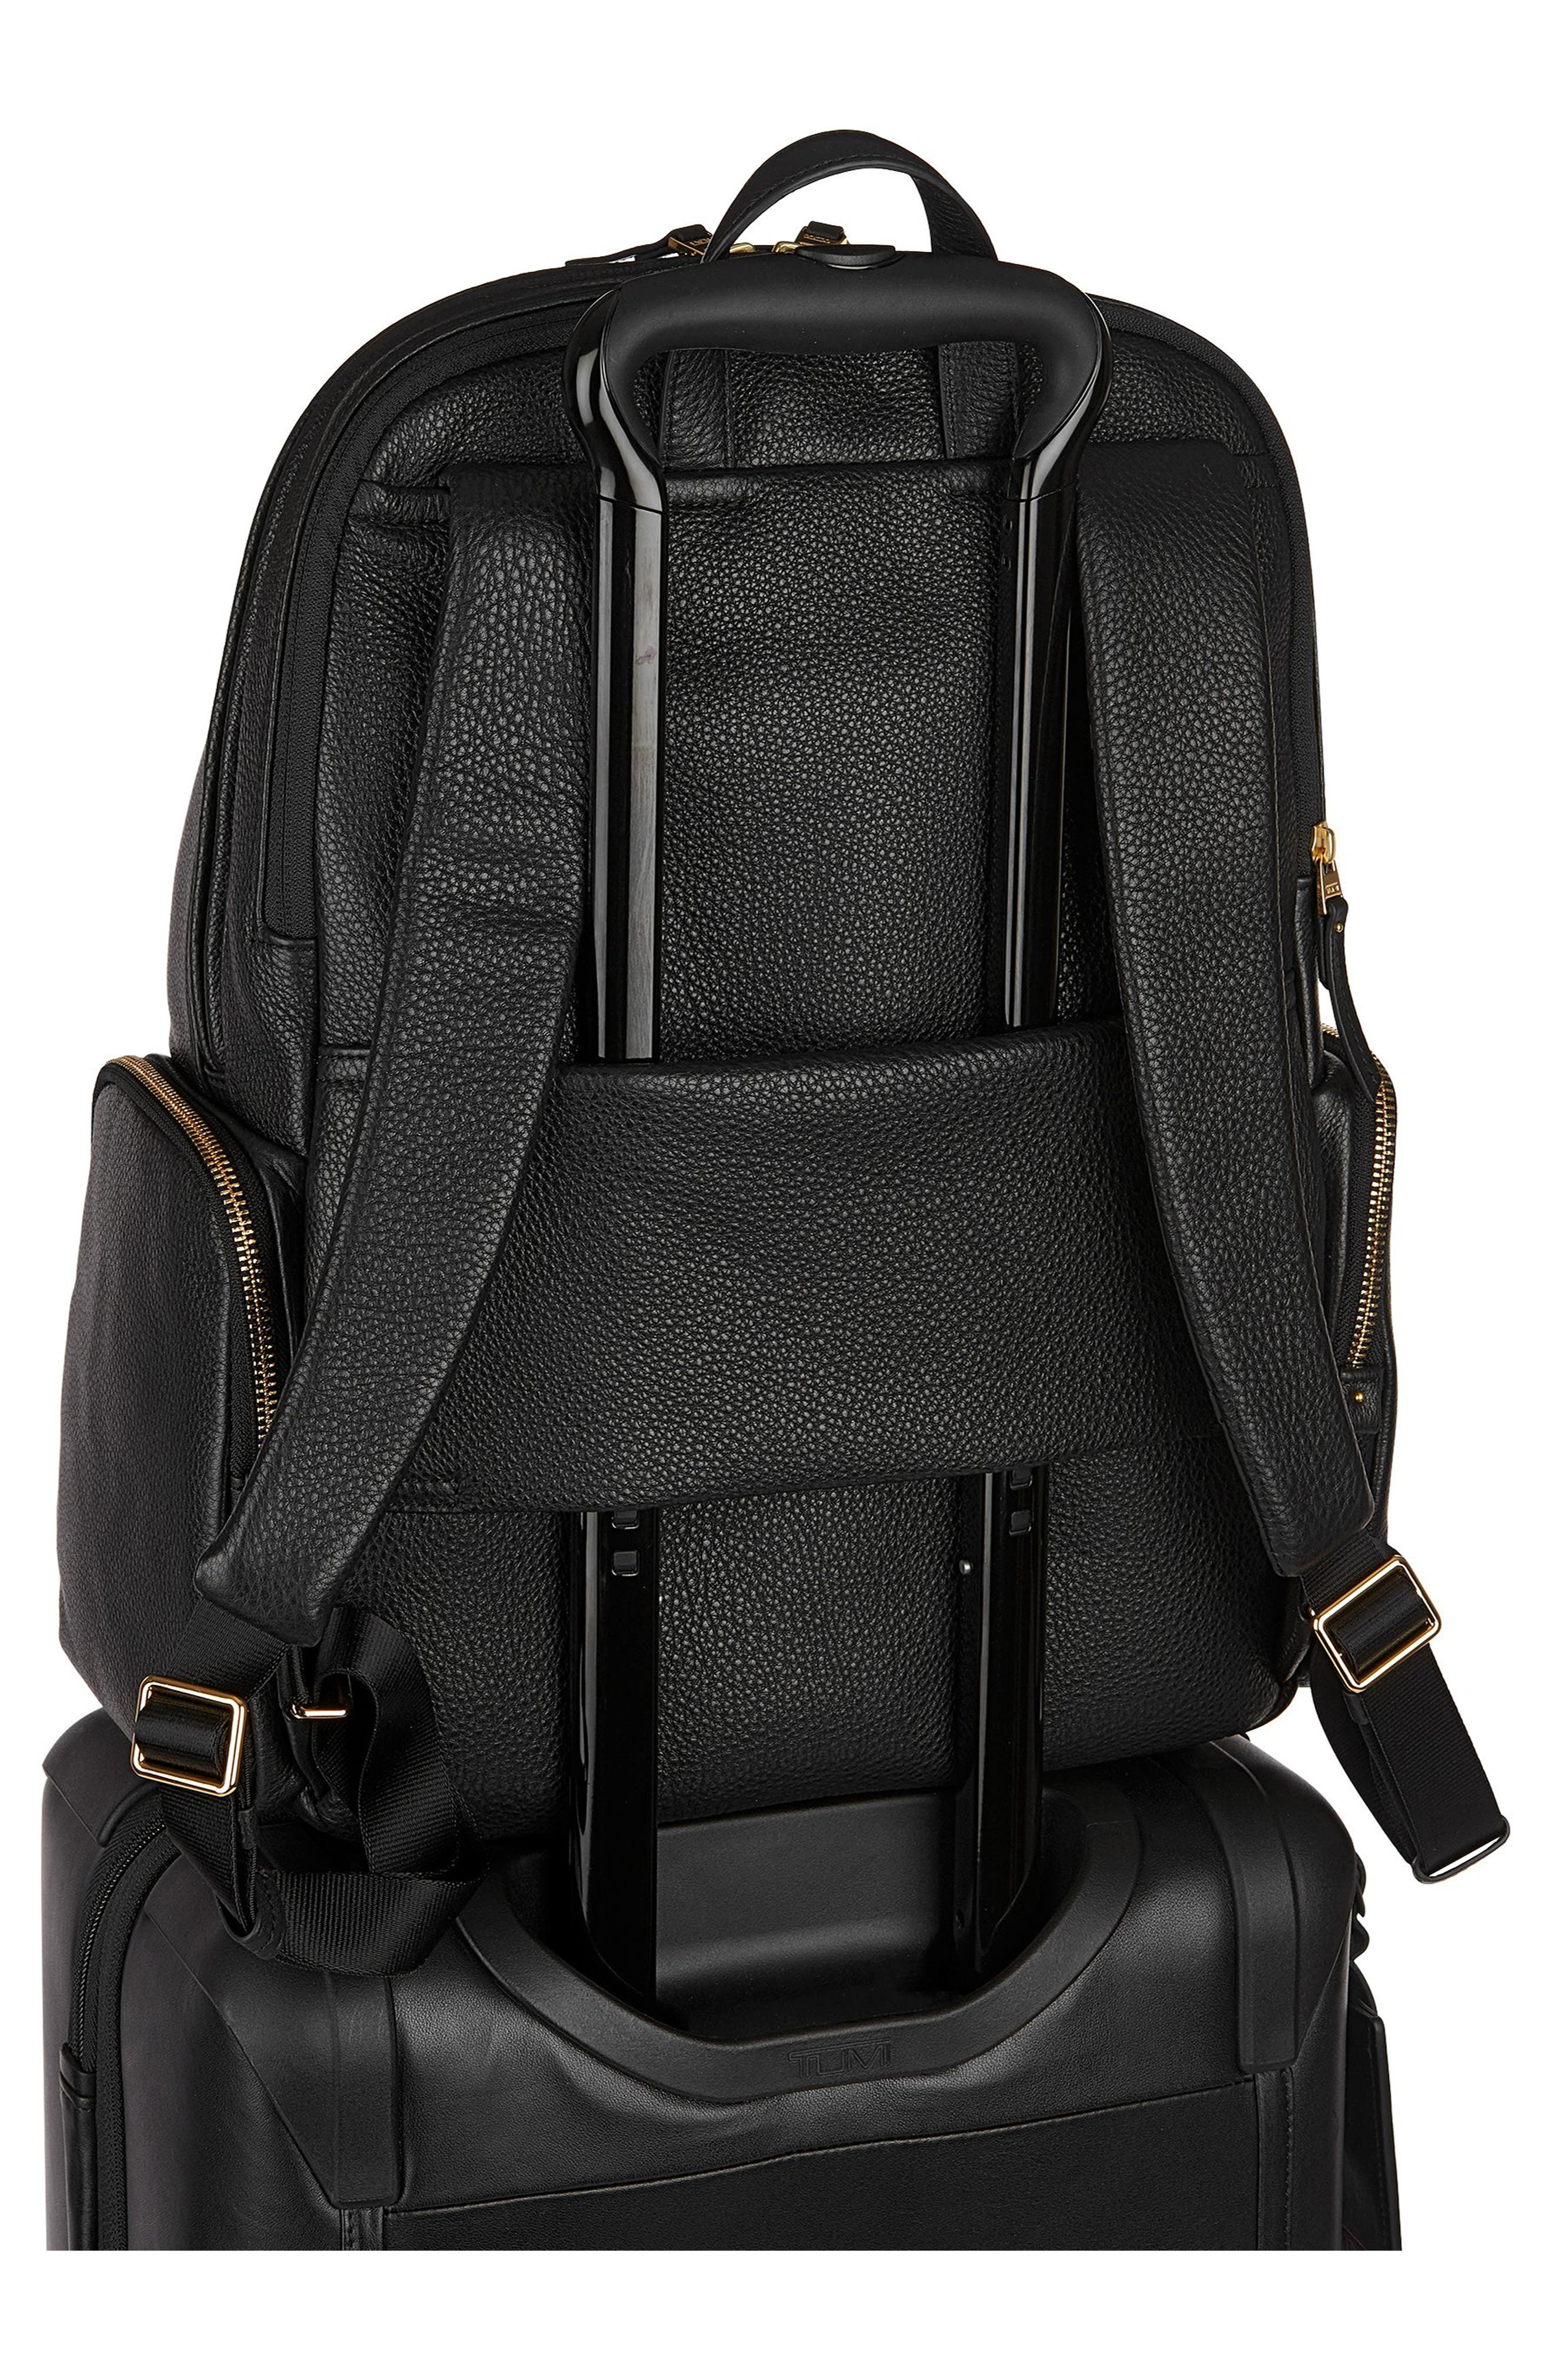 Calais Leather Computer Backpack,                             Alternate thumbnail 4, color,                             001